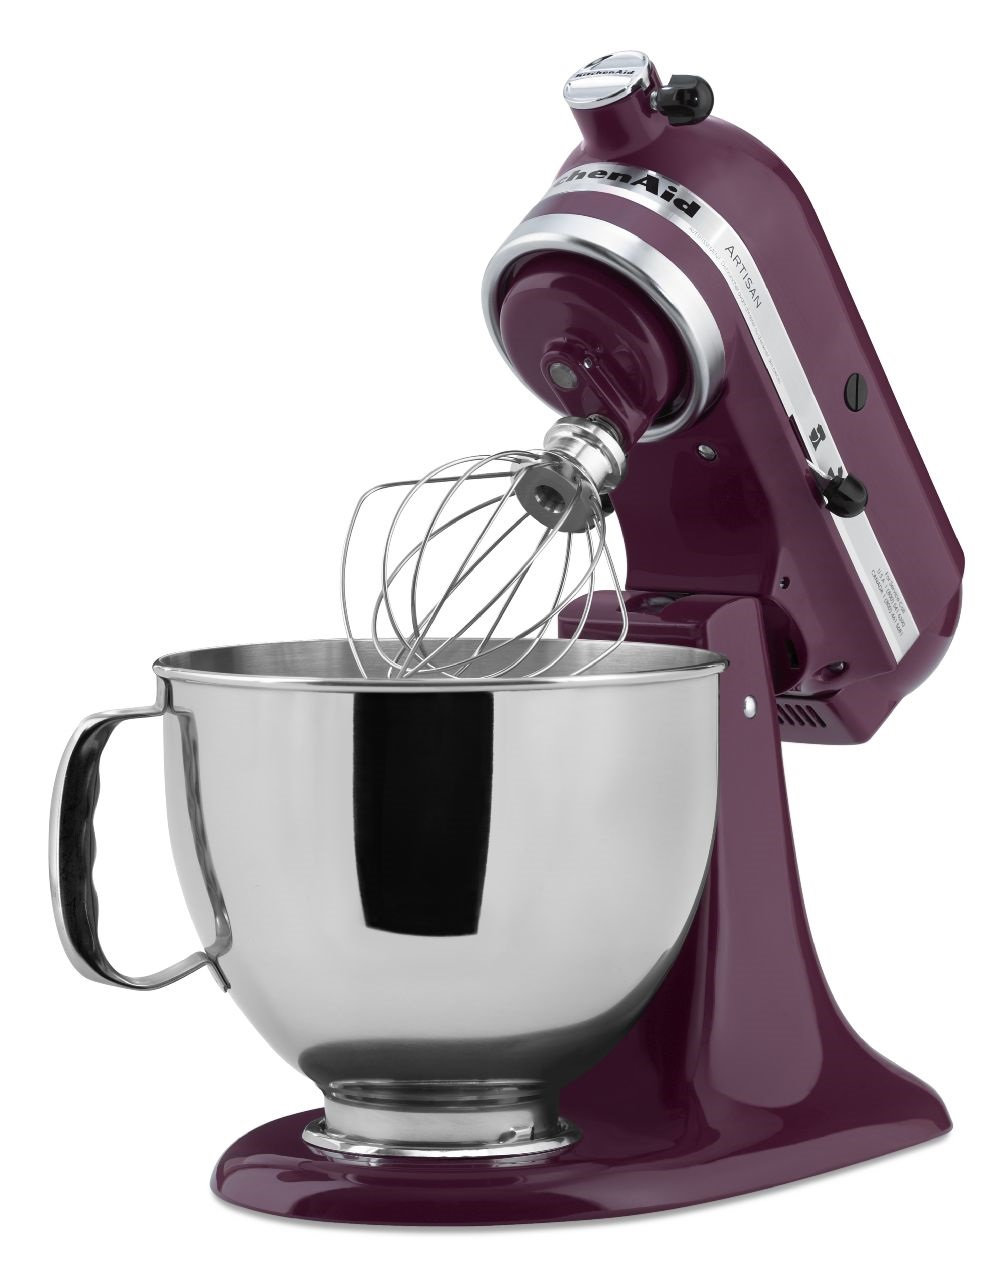 KitchenAid-Refurbished-Artisan-Series-5-Quart-Tilt-Head-Stand-Mixer-RRK150 thumbnail 25